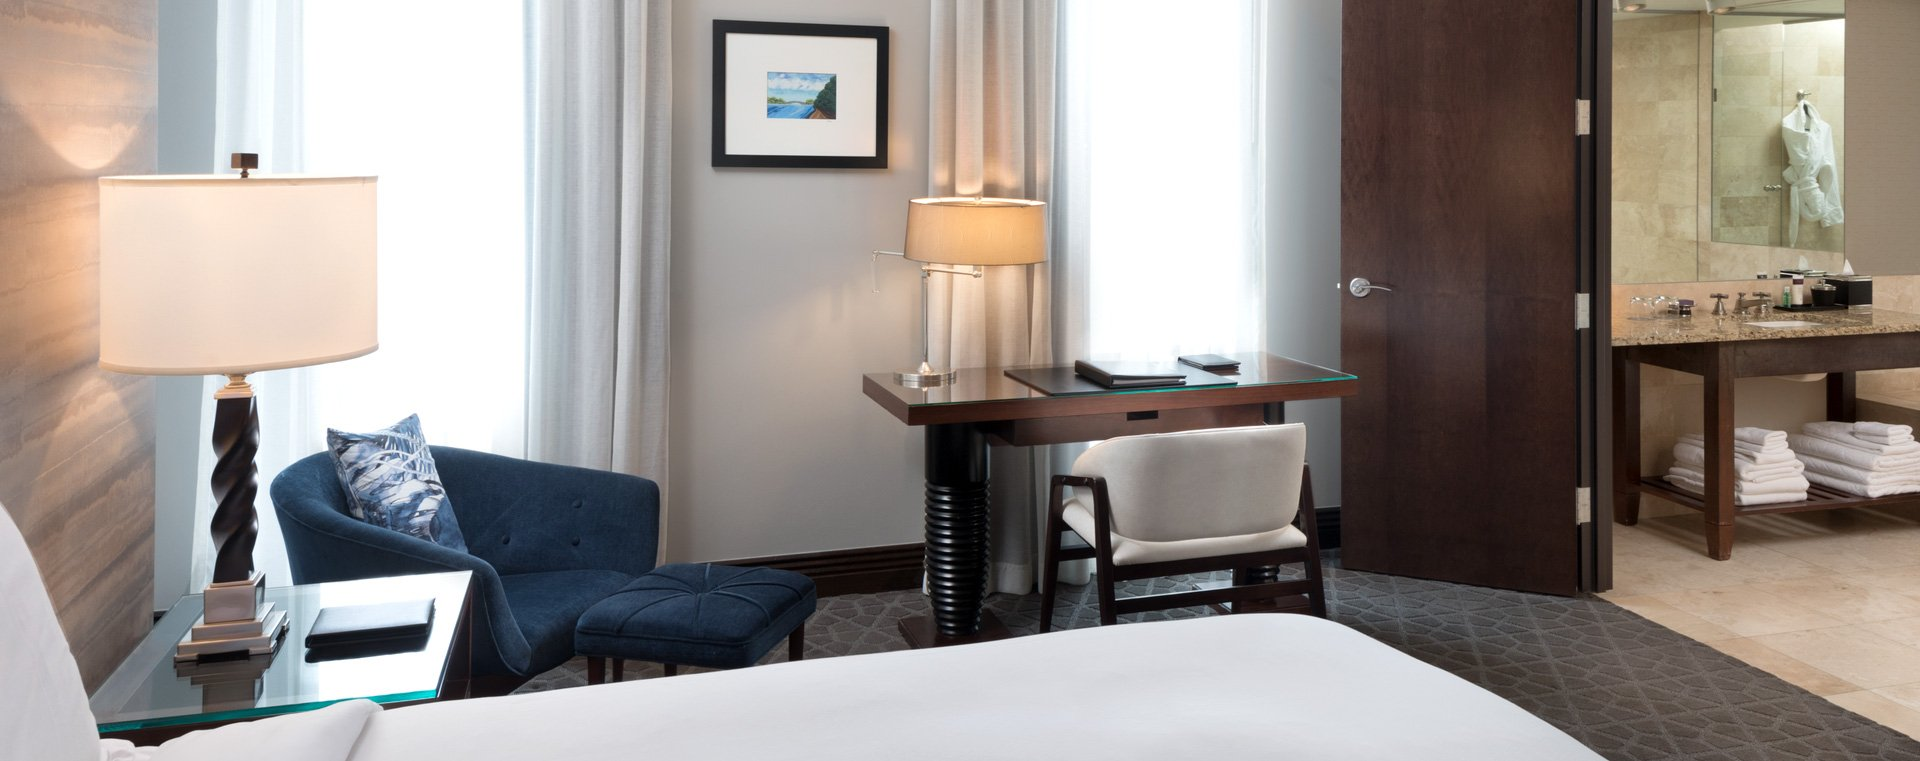 Hotel Ivy, A Luxury Collection Hotel, Minneapolis Grand Deluxe Room